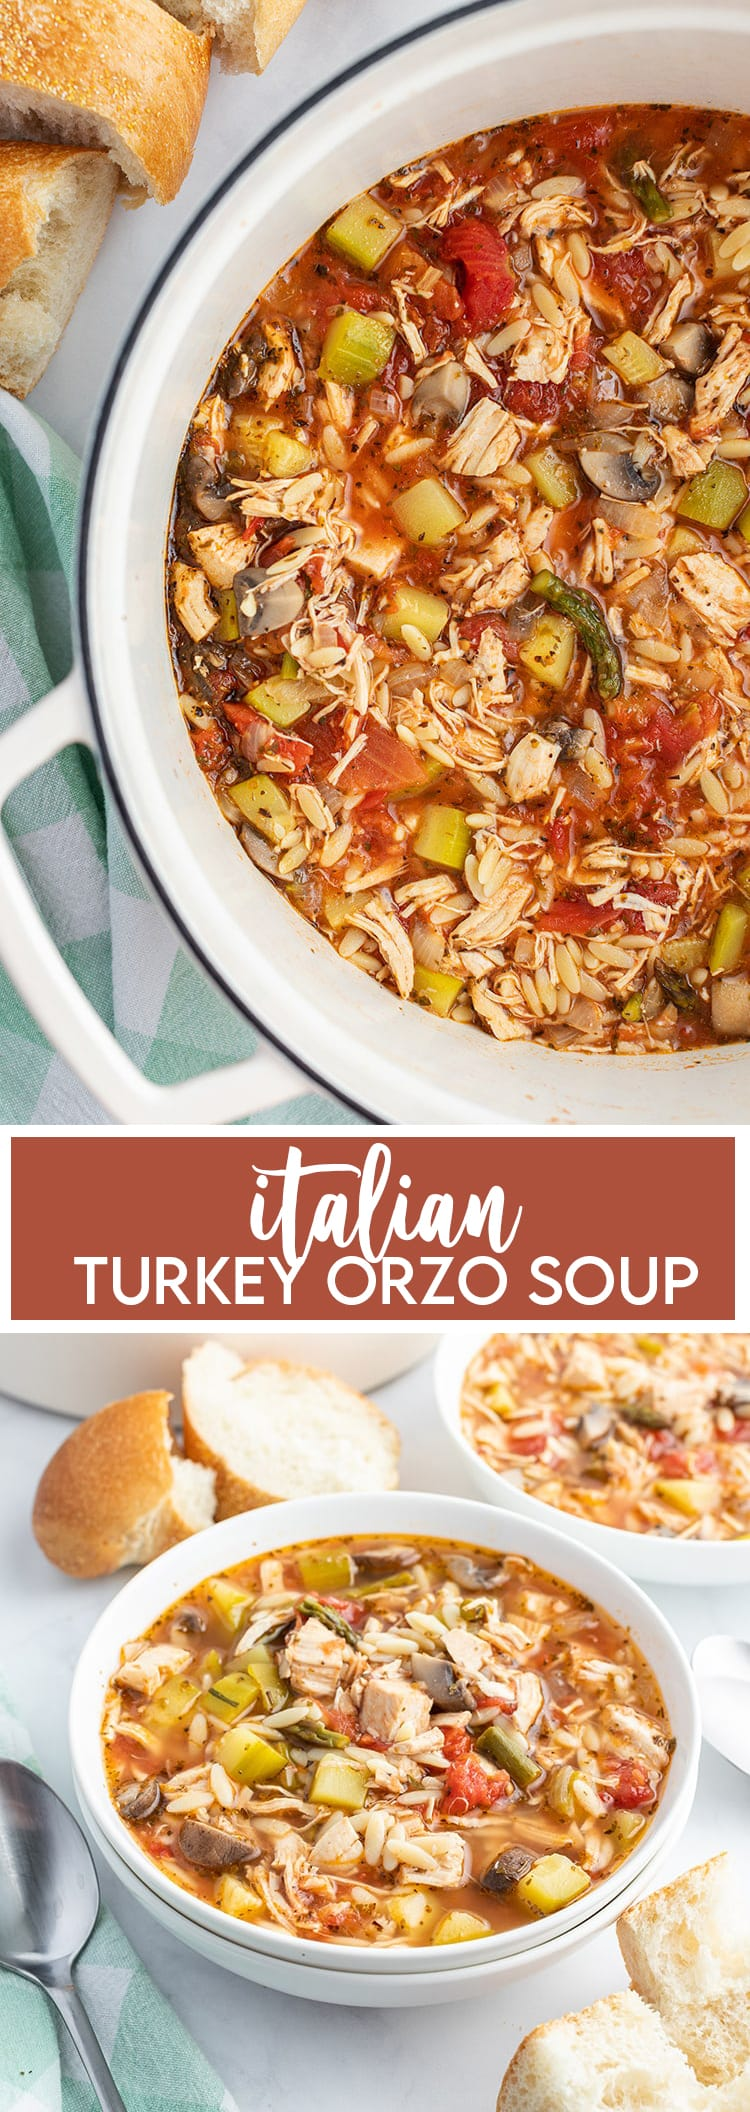 A collage of two photos of Italian Turkey Orzo soup. The first is the soup in a pot. The second is a small bowlful of soup with bread behind the bowl.